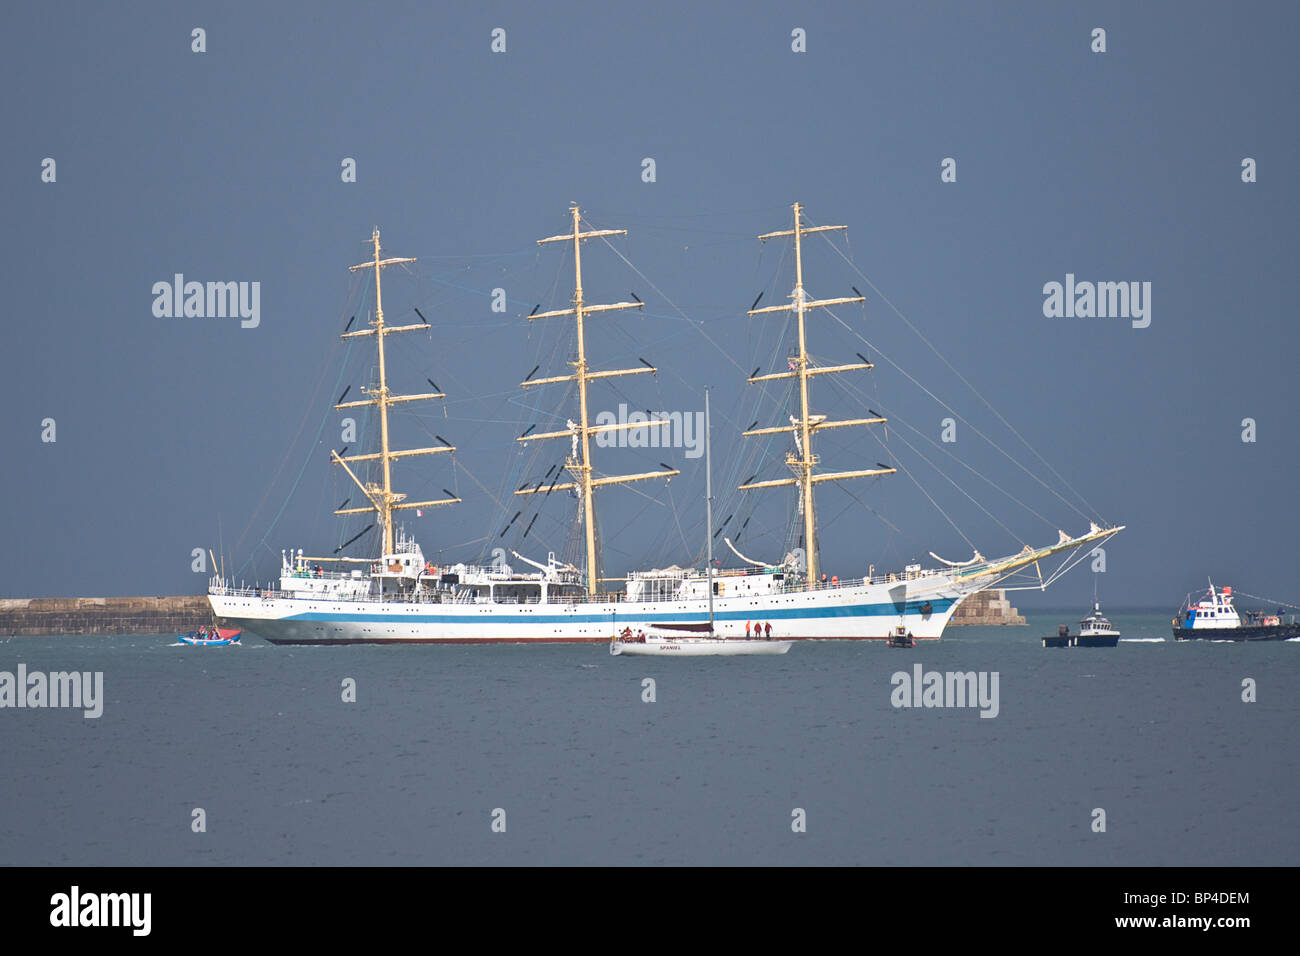 Tall sailing ship leaving Victoria Harbour at Hartlepool during the 2010 Tall Ships' Race. - Stock Image